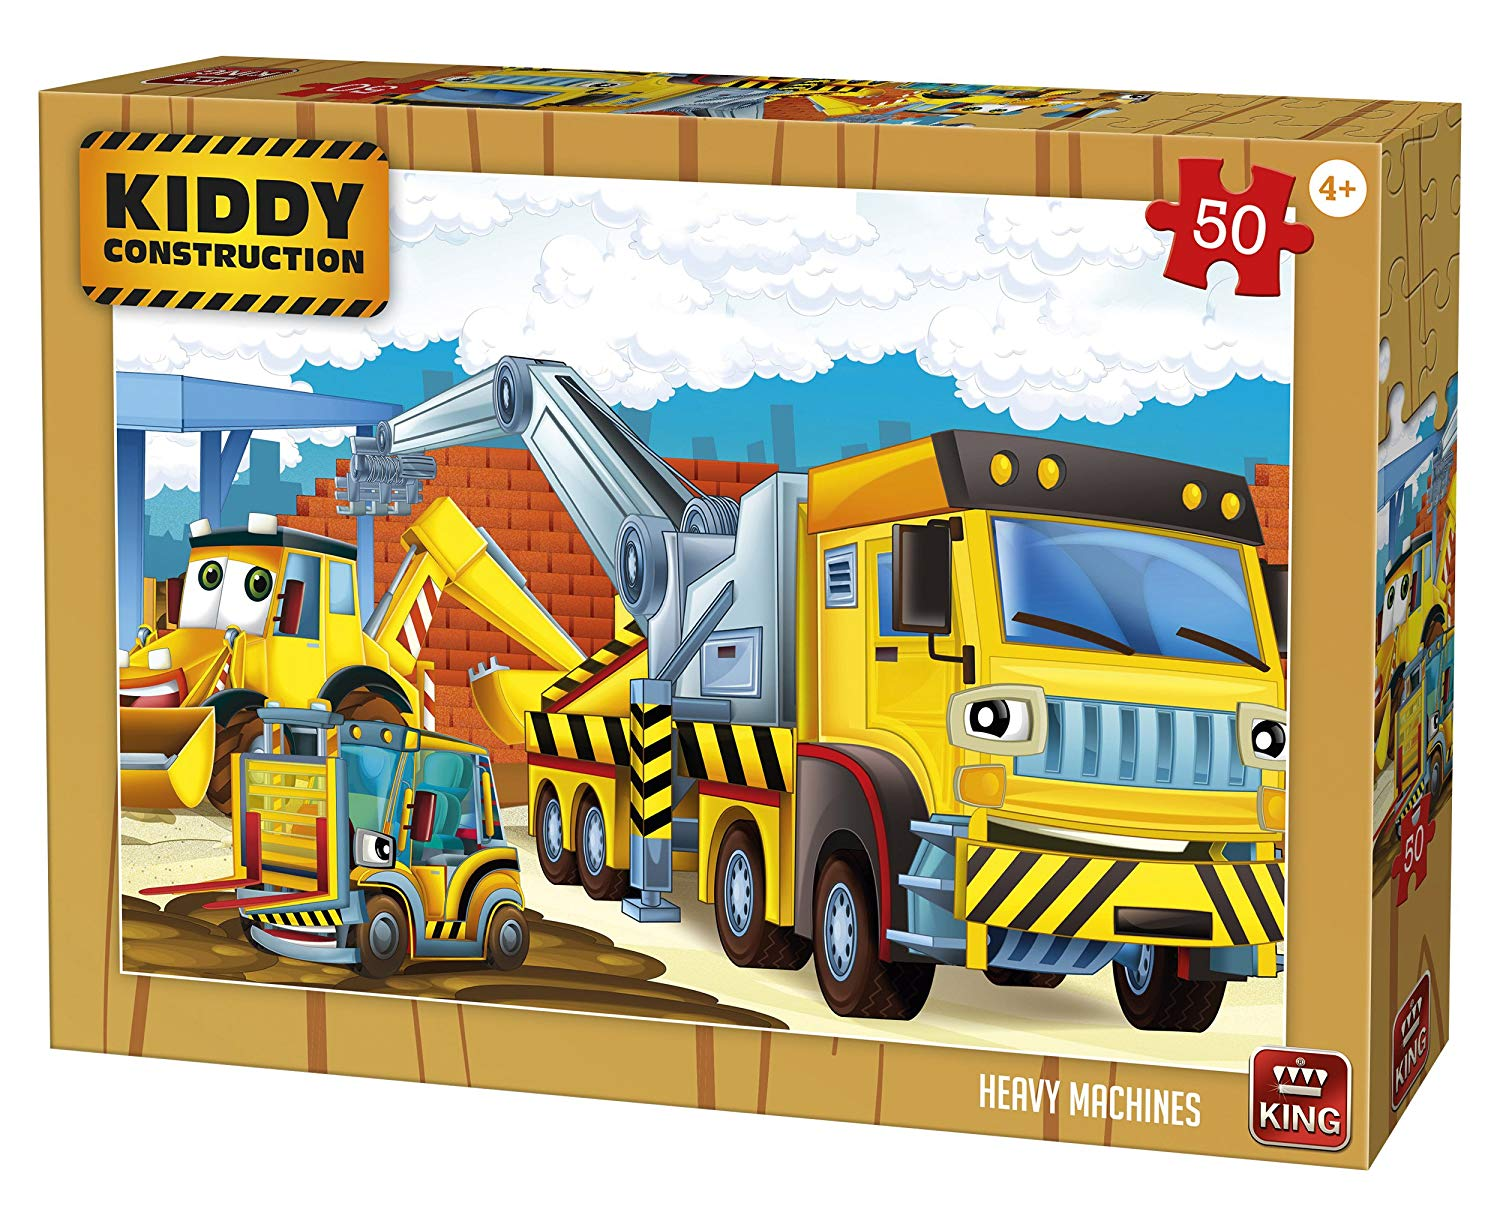 king-international-kiddy-construction-50-teile-puzzle-king-puzzle-05458